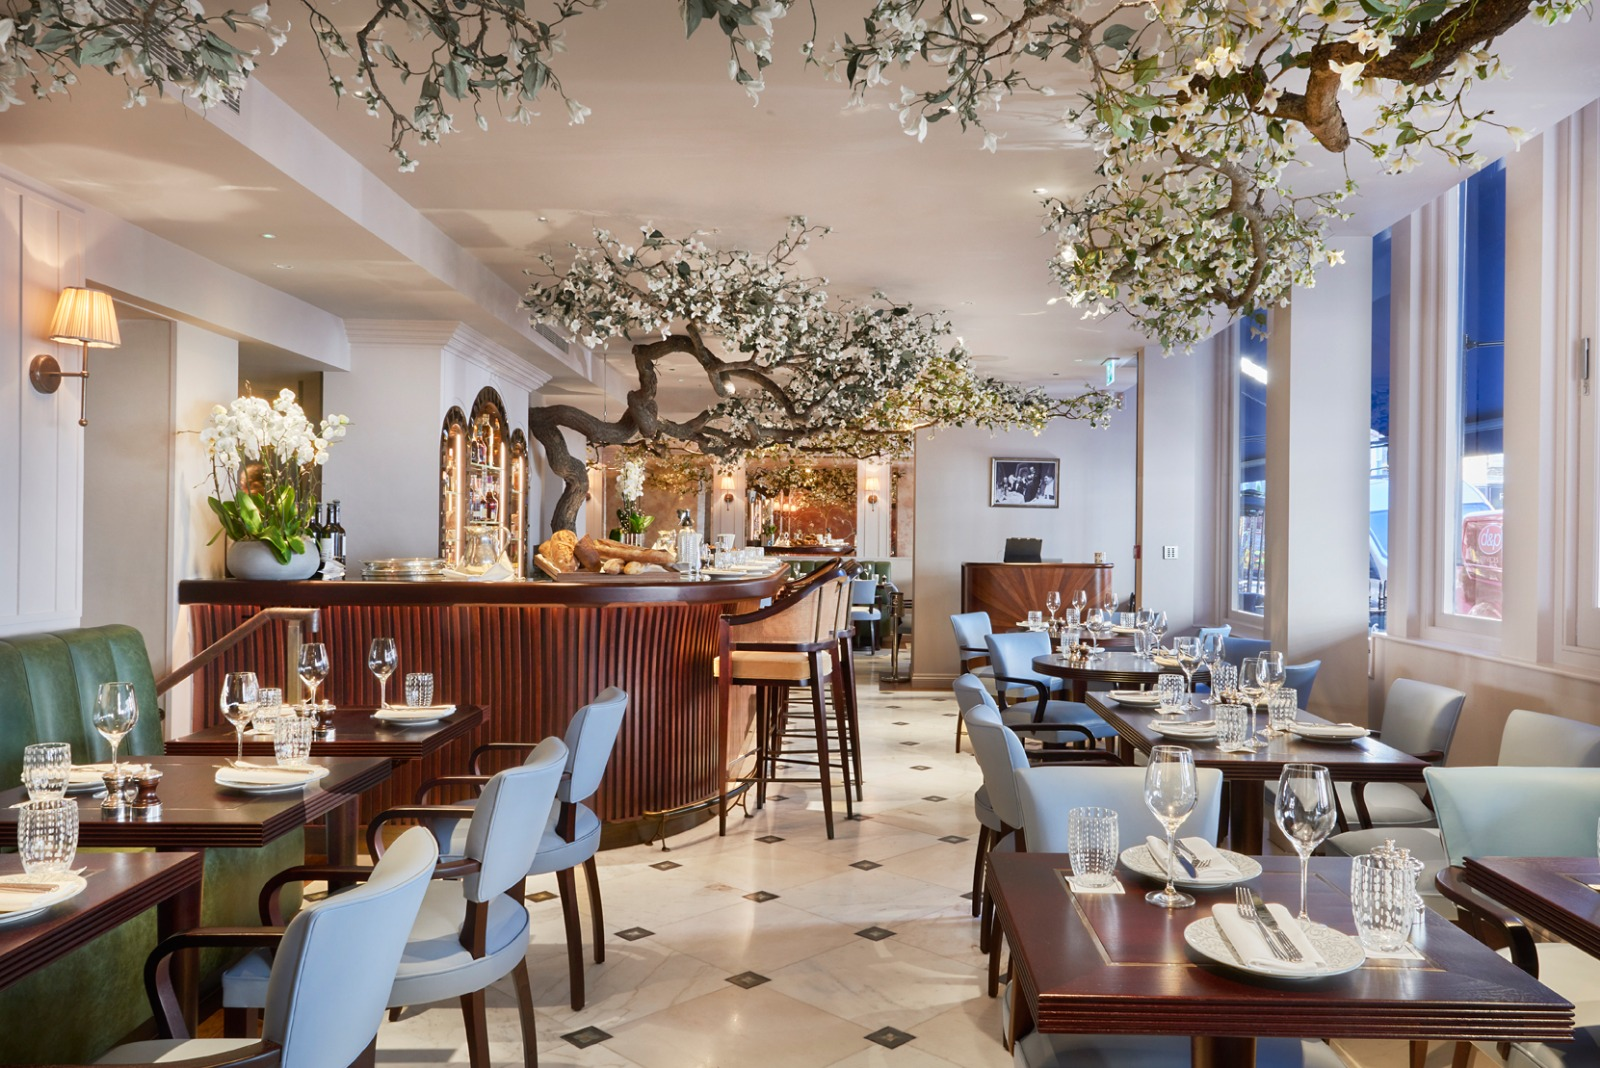 A.O.K KITCHEN - A contemporary restaurant with a health focus, A.O.K serves gluten, dairy and refined sugar free dishes inspired by Mediterranean and Californian flavours.Address: 52-55 Dorset Street, London W1U 7NH